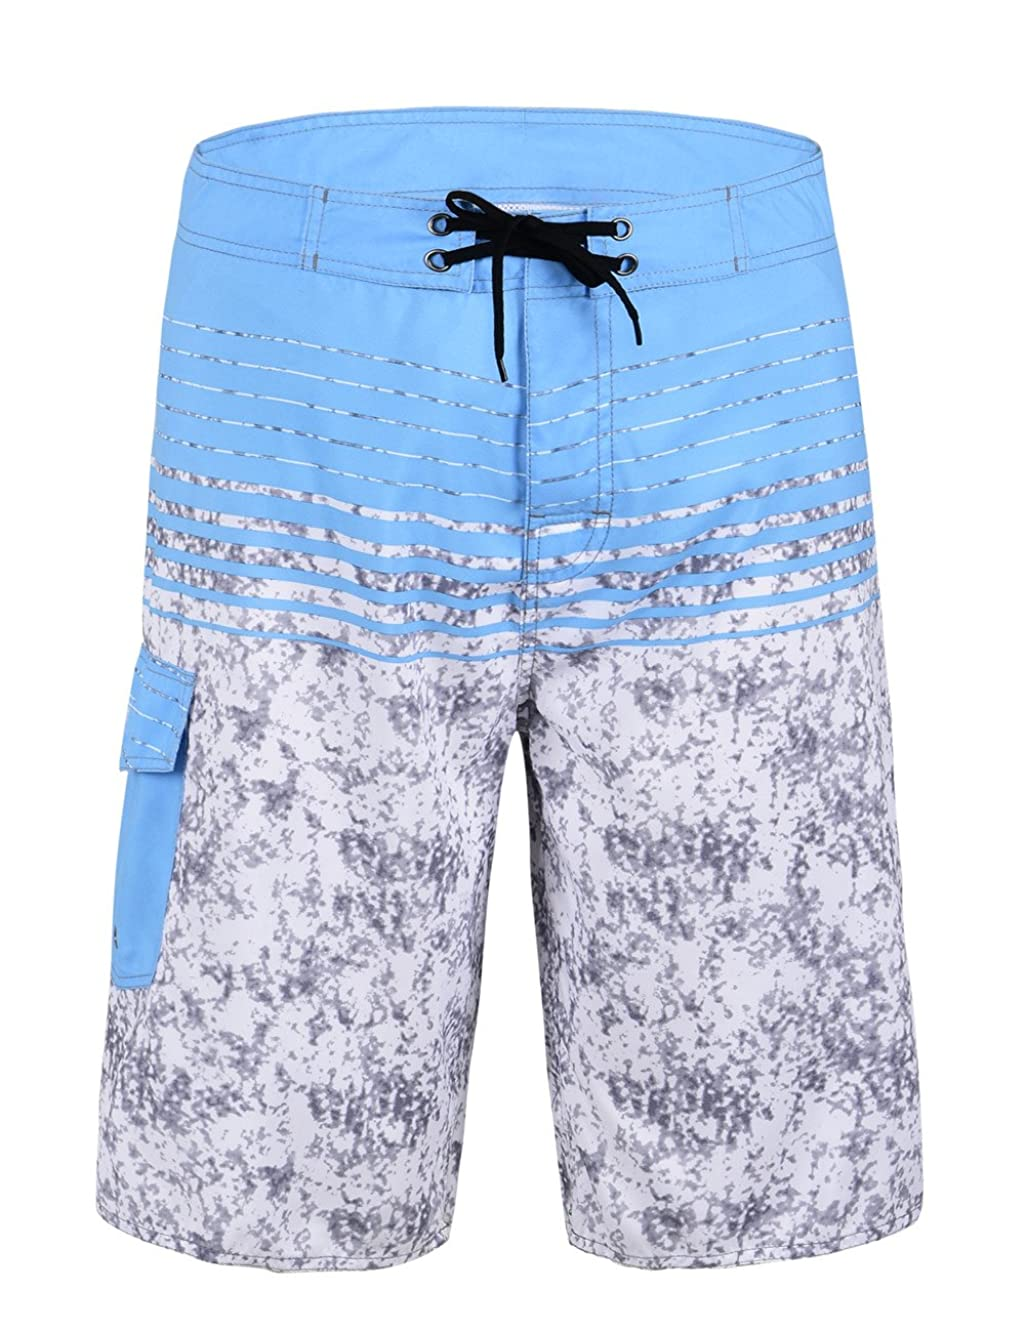 Unitop Men's Beachwear Striped Printed Fast Dry Surf Trunks with Lining